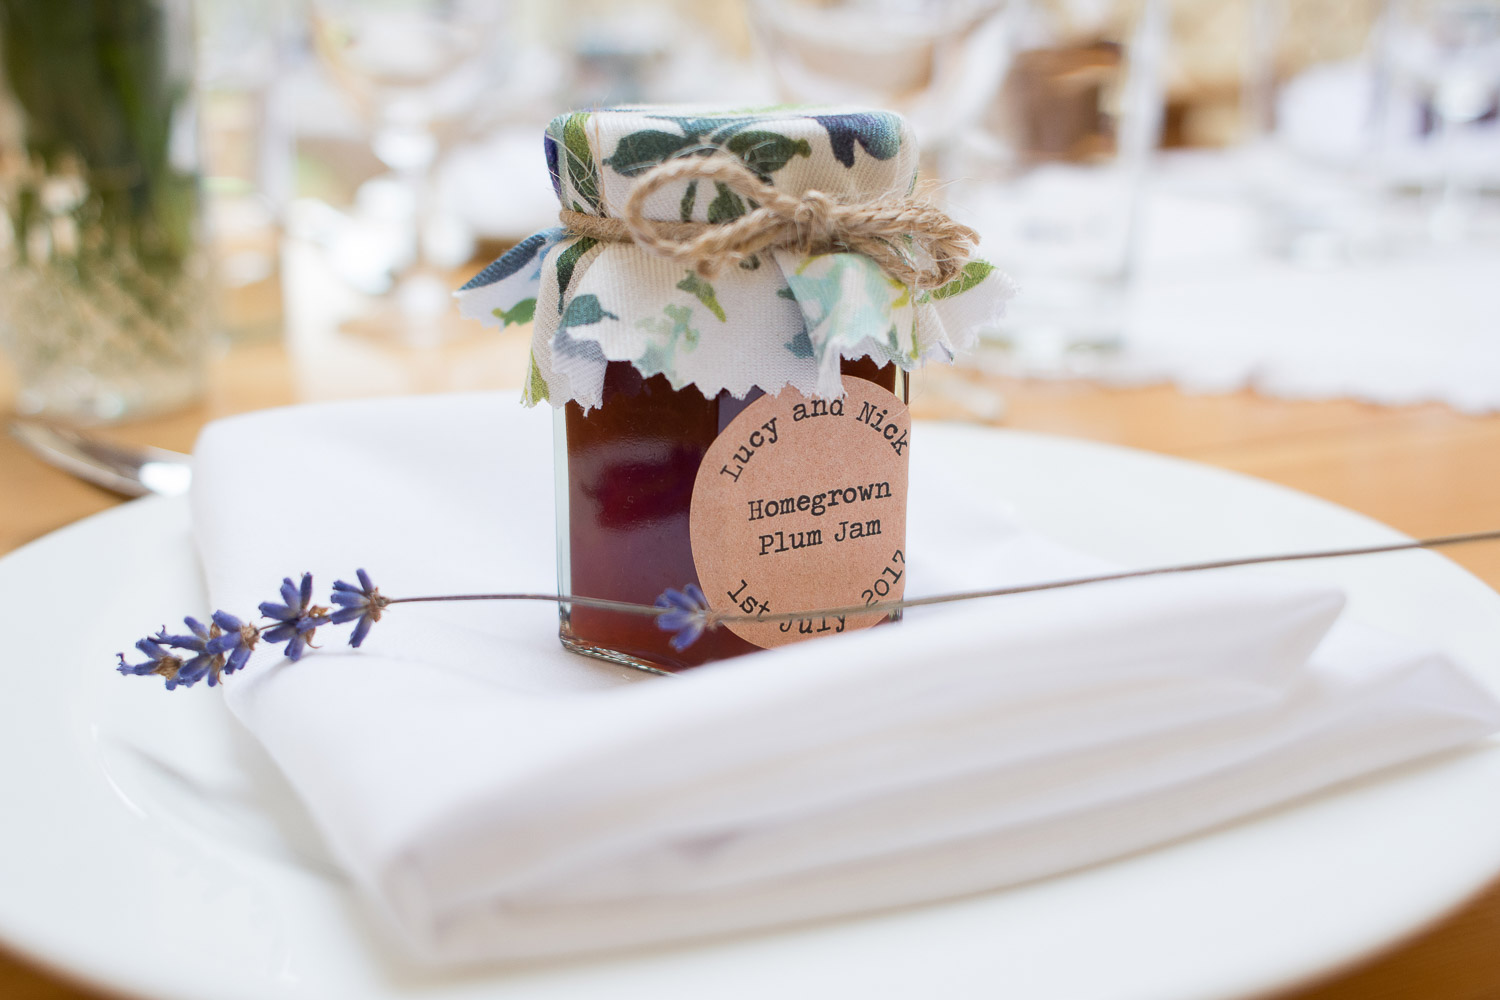 Table details, home made jam and lavender at wedding yurts wedding in leicestershire